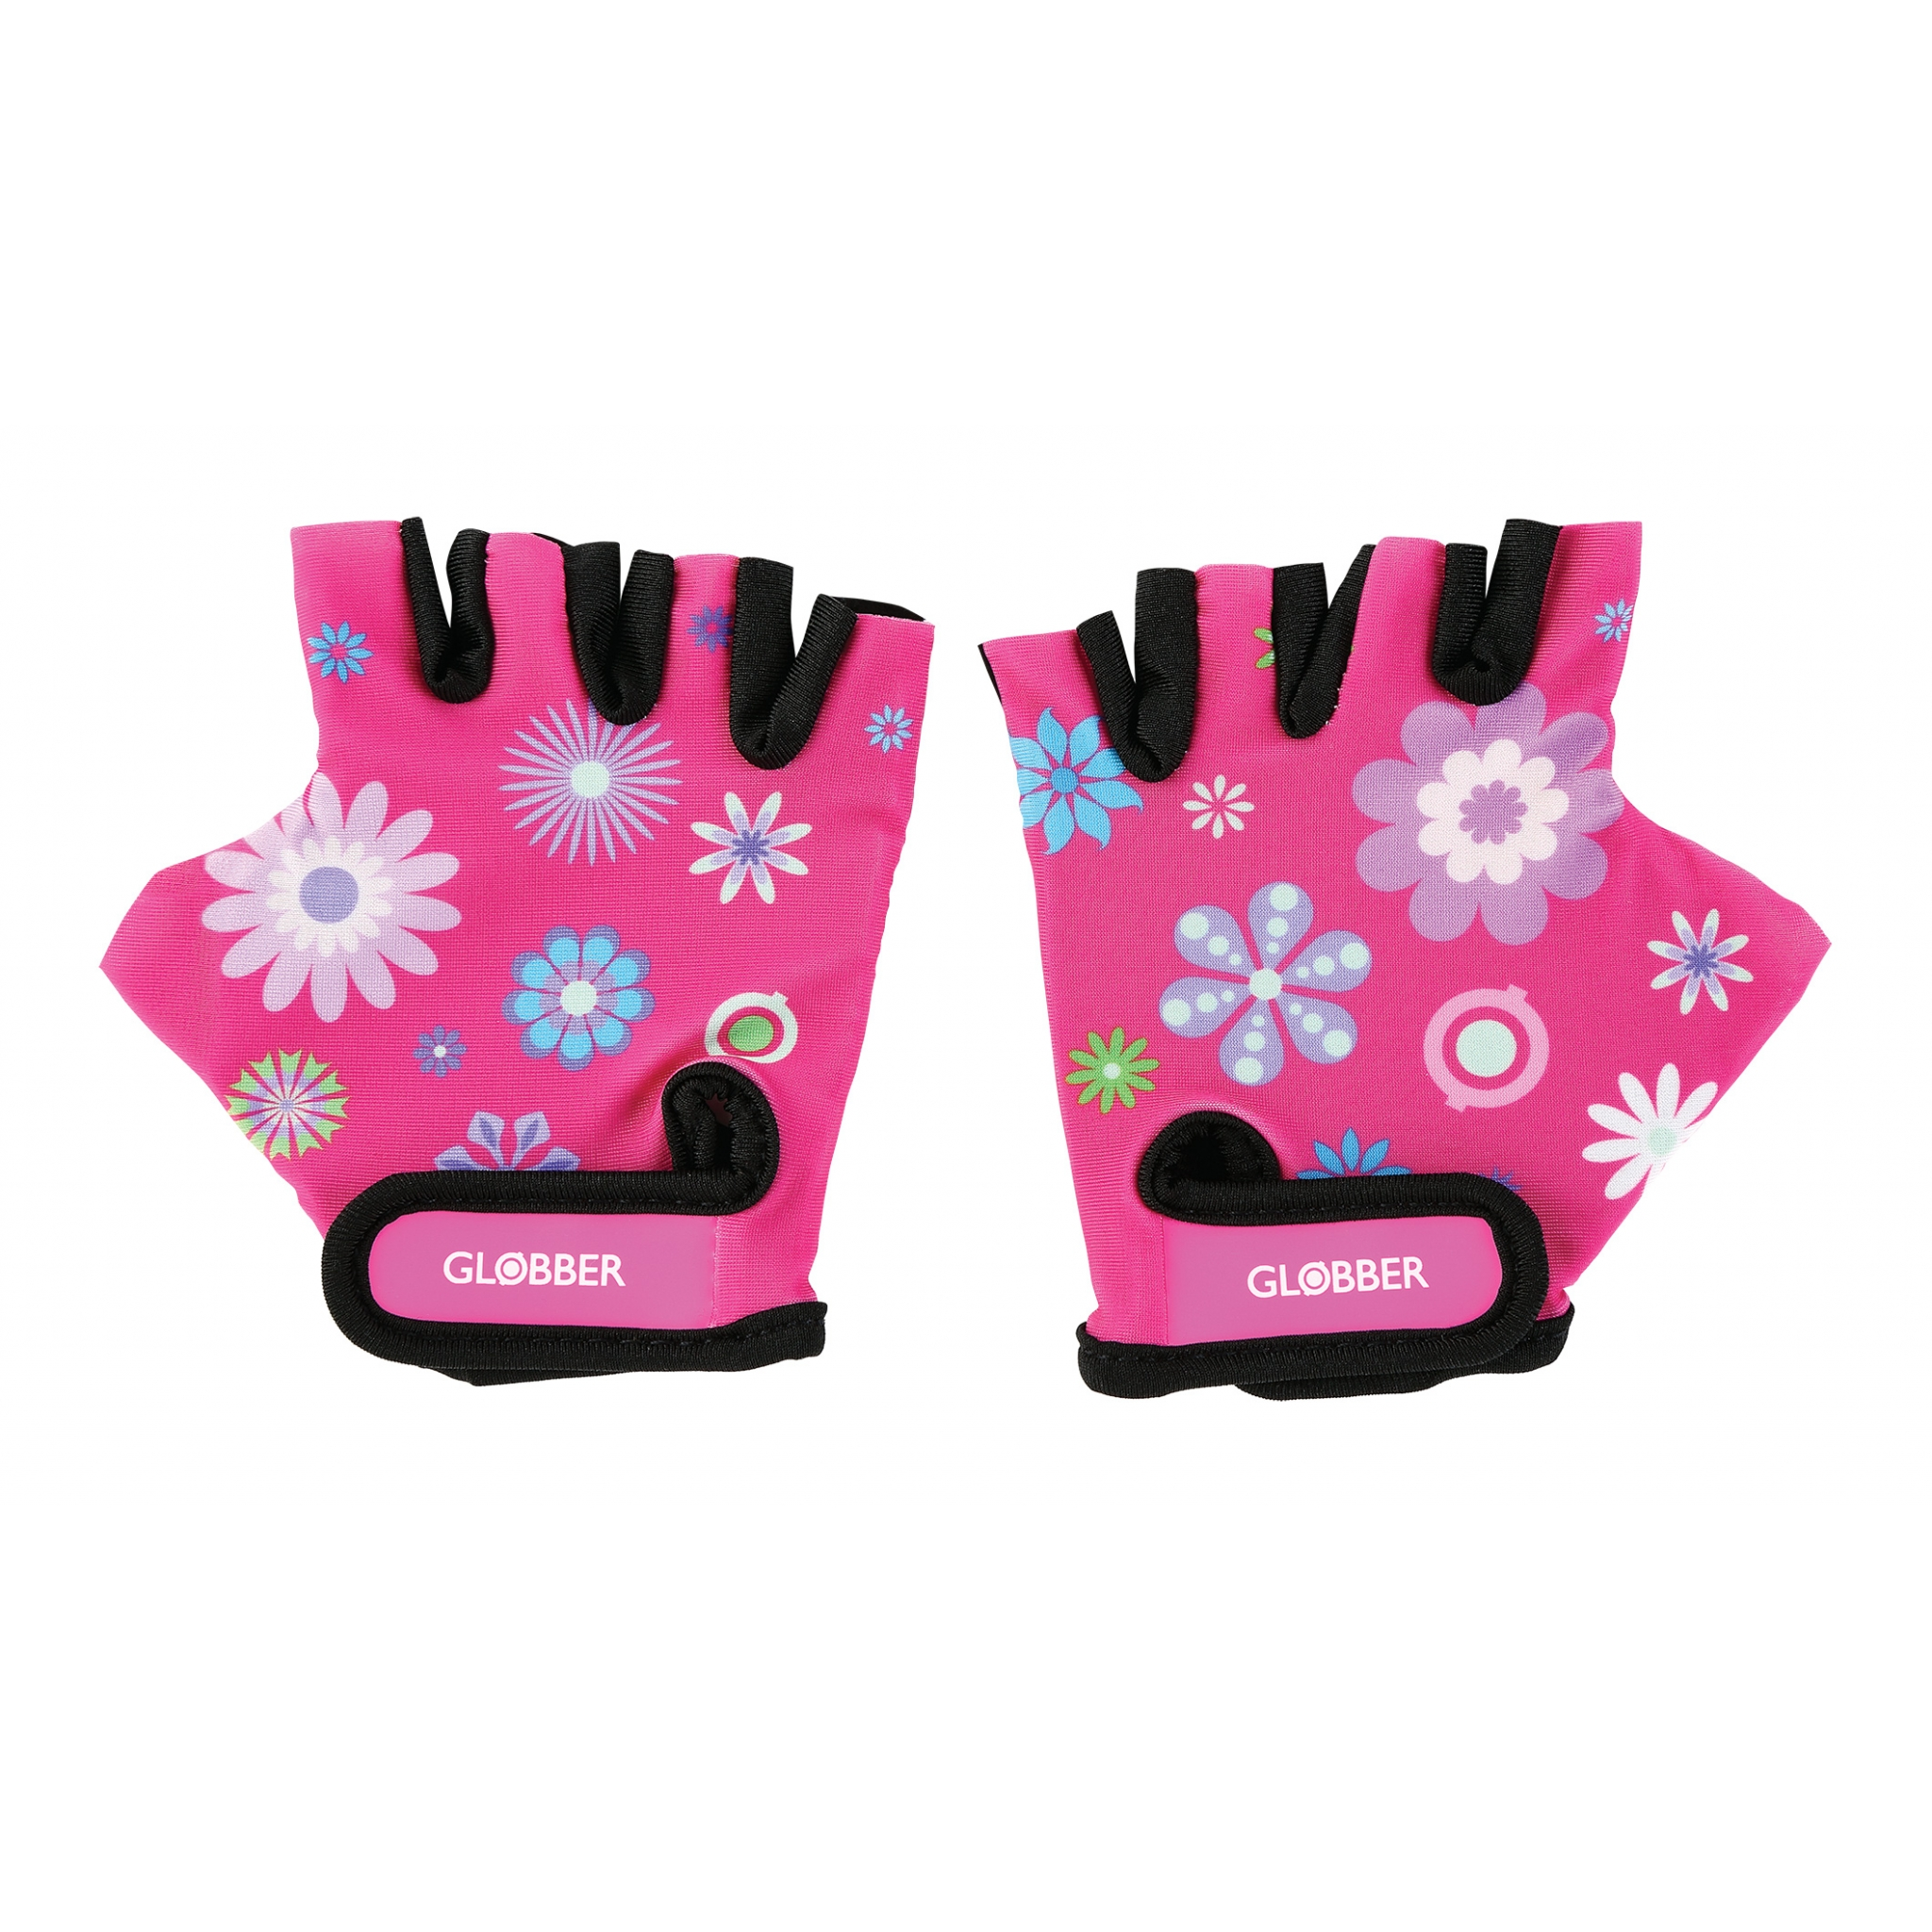 printed scooter gloves for toddlers - Globber 0